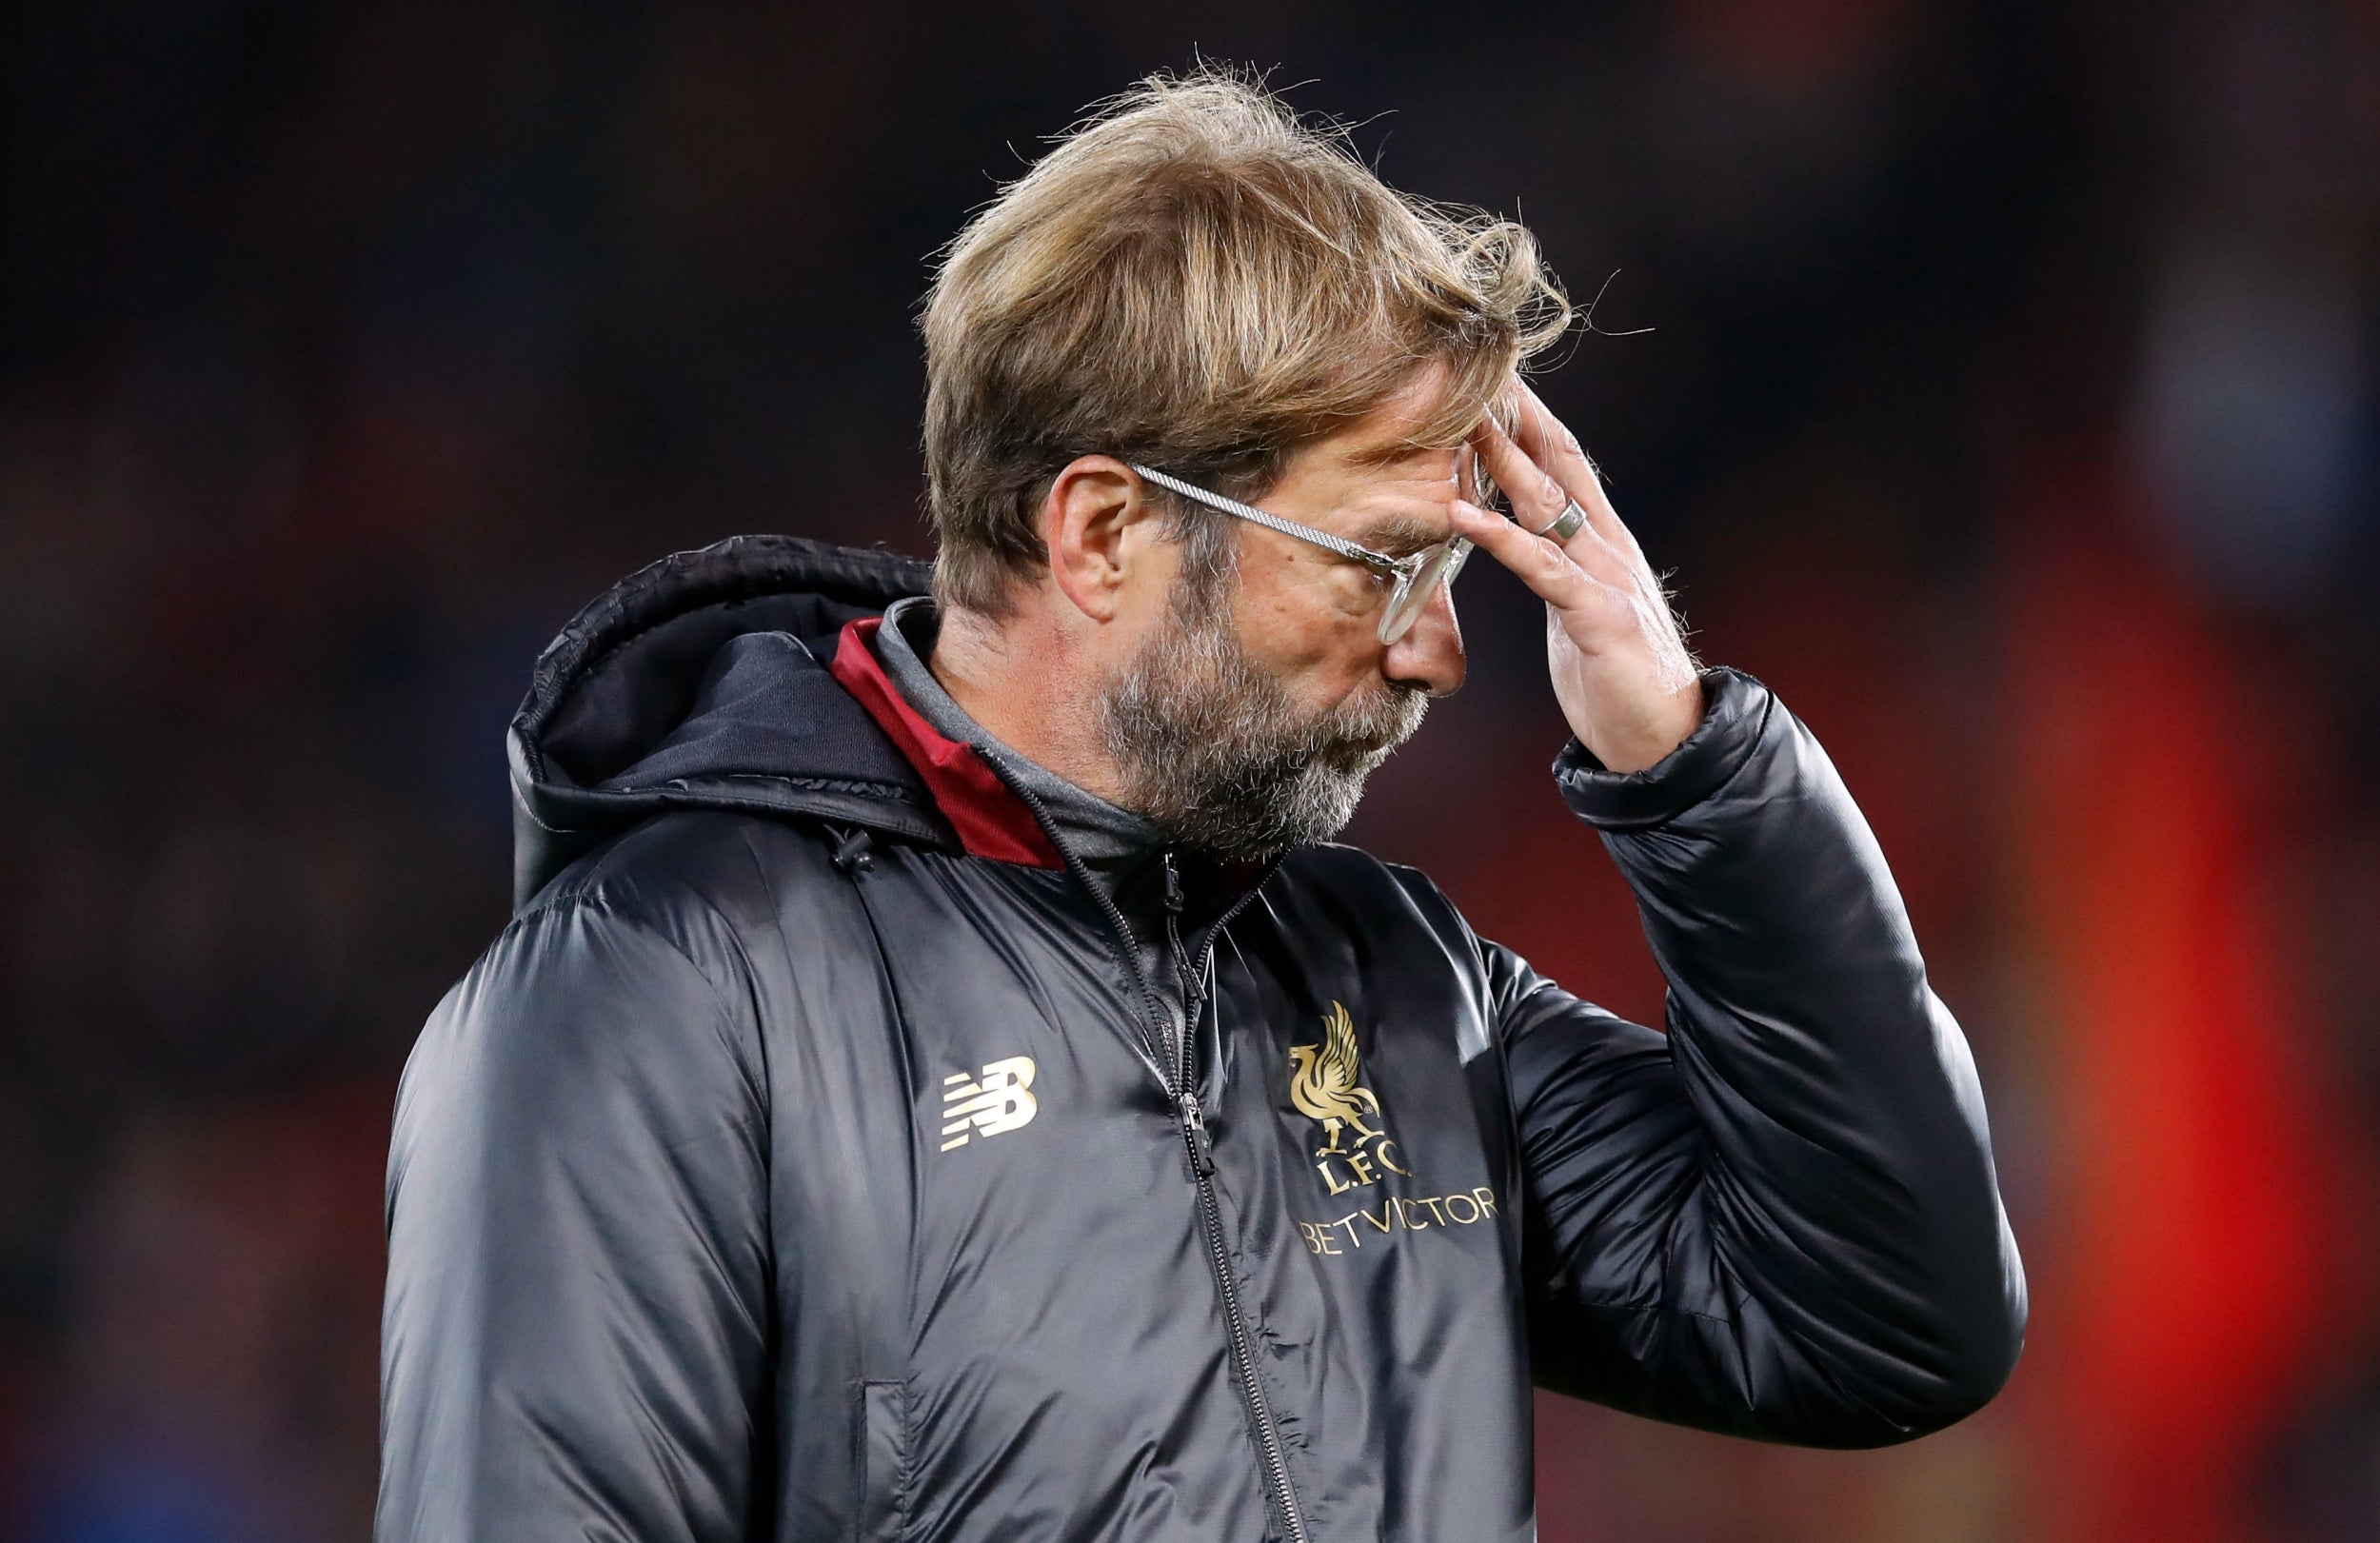 Liverpool can and must improve despite unbeaten start to the Premier League season, insists Jurgen Klopp